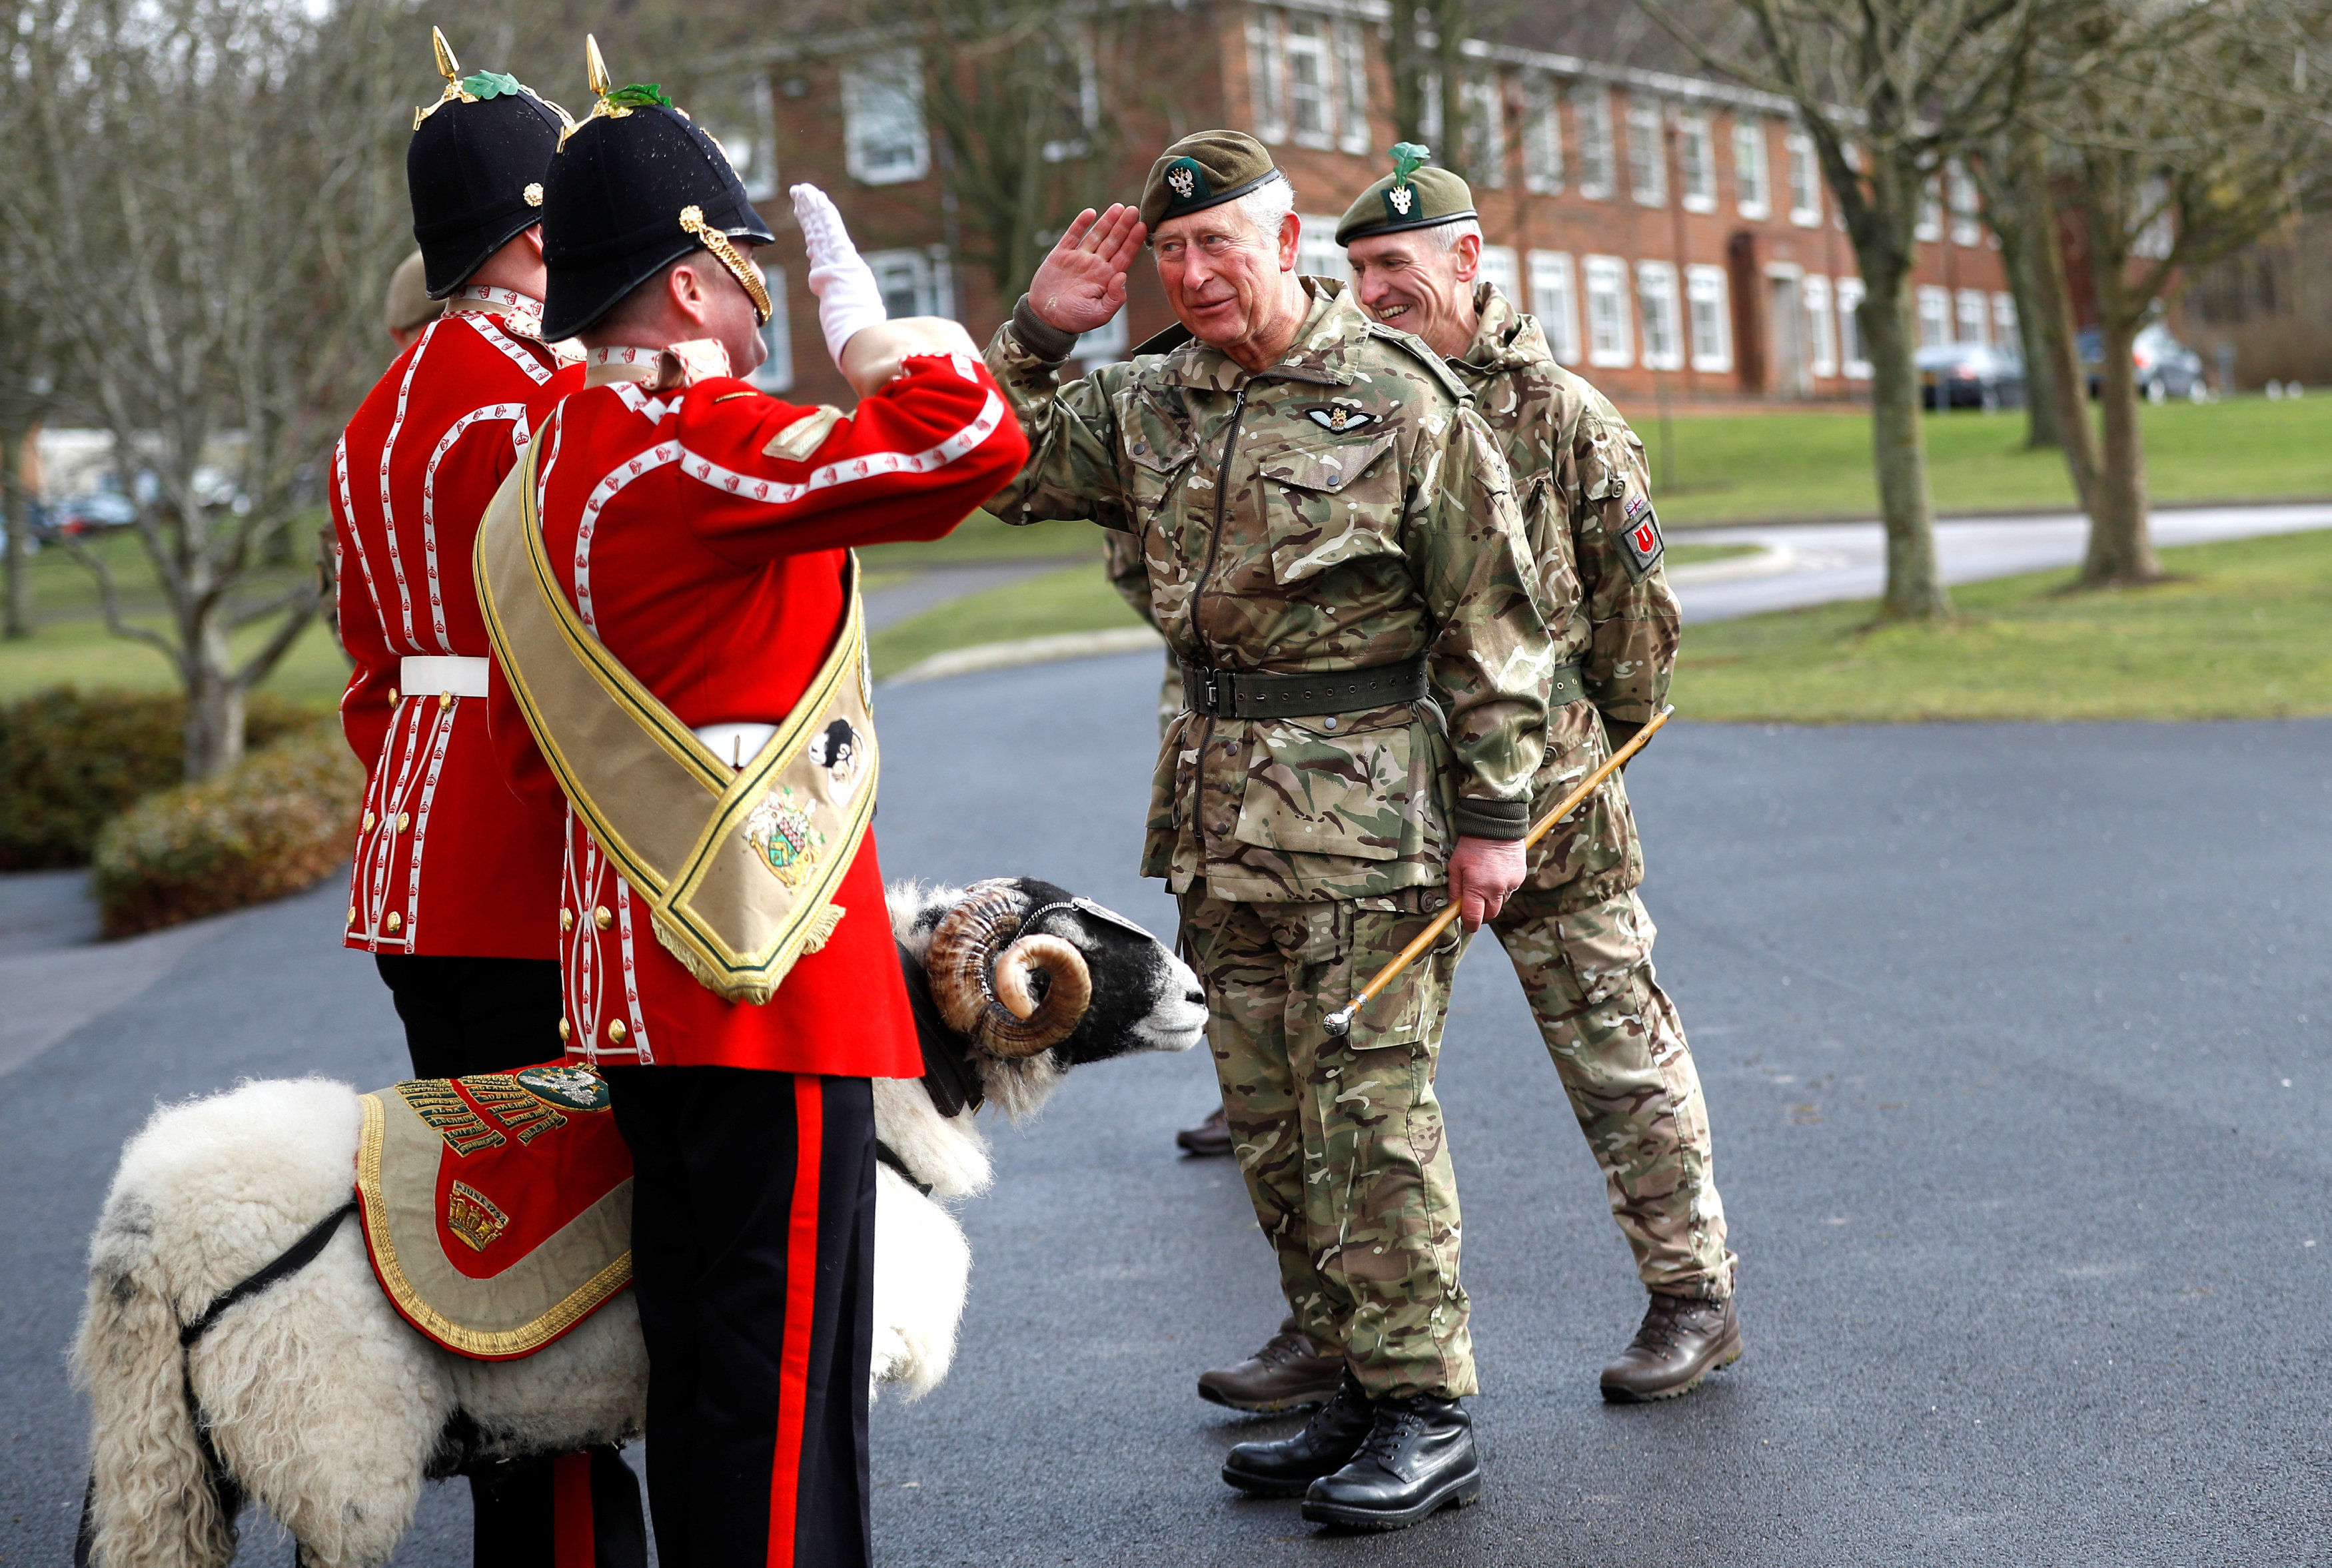 The Prince of Wales inspects troops and meets Private Derby XXII, a Swaledale Ram and the Regimental Mascot during his visit to the 1st Battalion the Mercian Regiment